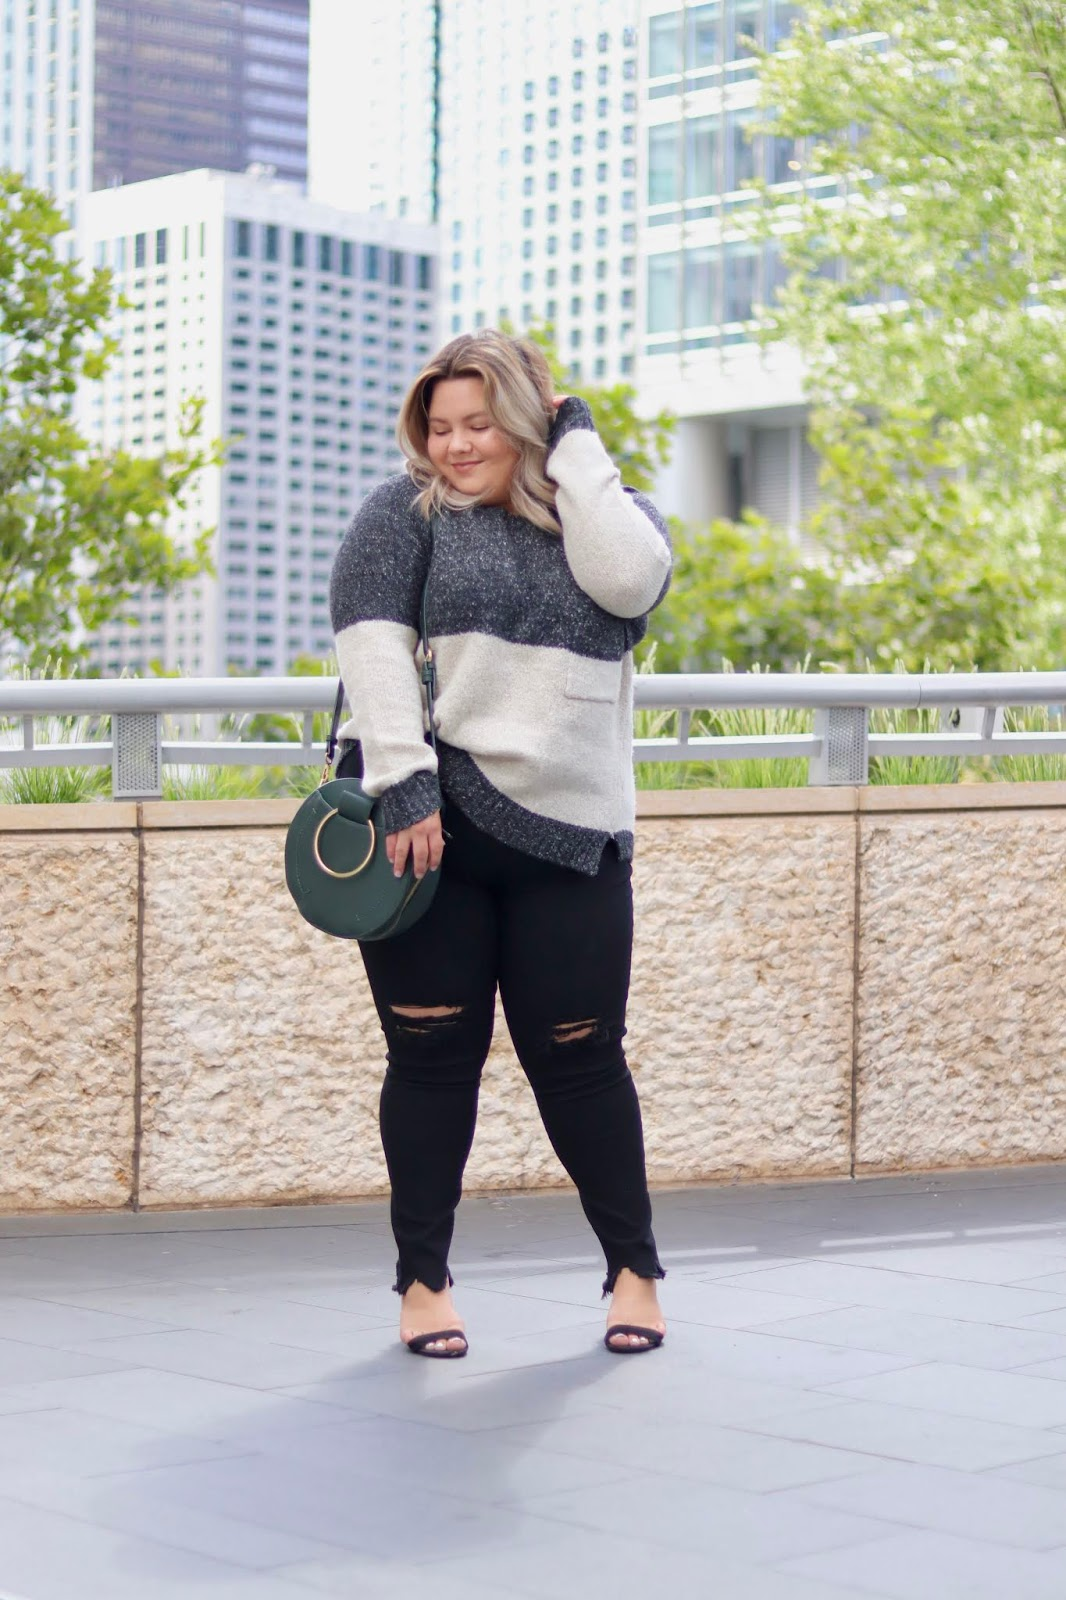 Chicago Plus Size Petite Fashion Blogger, influencer, YouTuber, and model Natalie Craig, of Natalie in the City, reviews Chic Soul's black skinny jeans and oversized fall sweater.